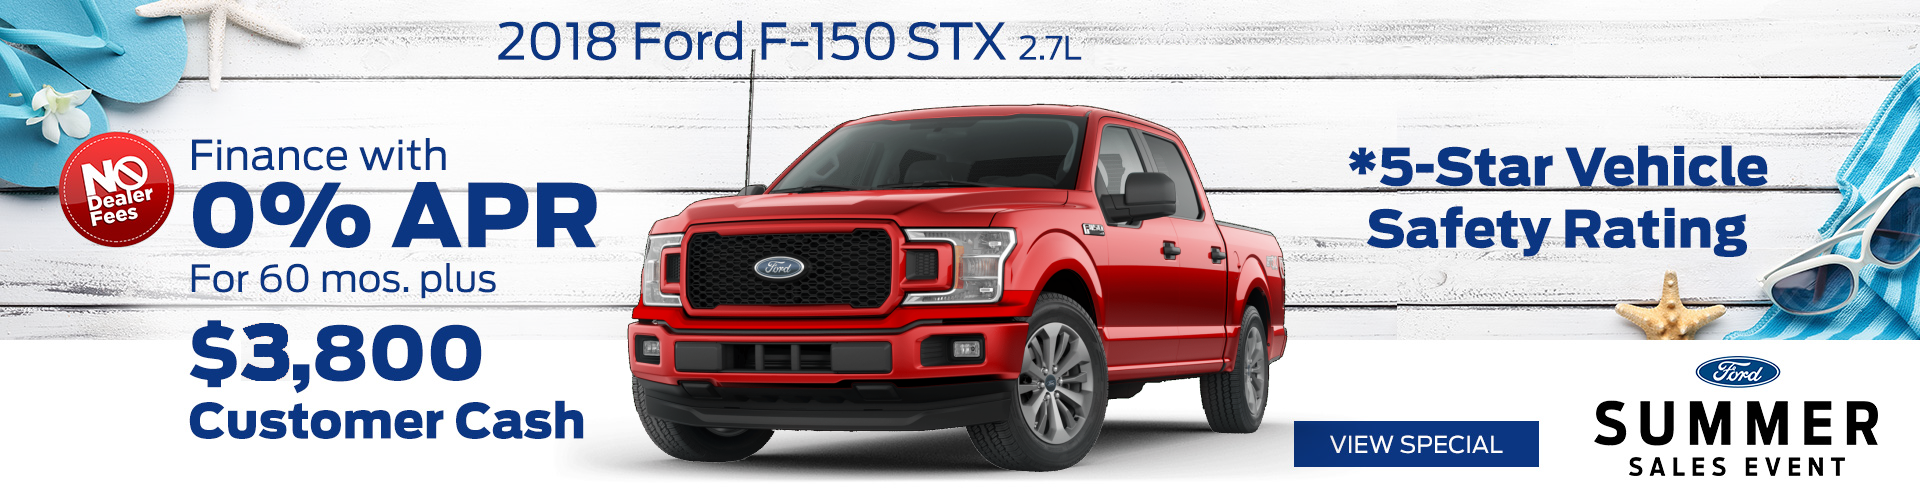 July 2018 Ford F-150 Special